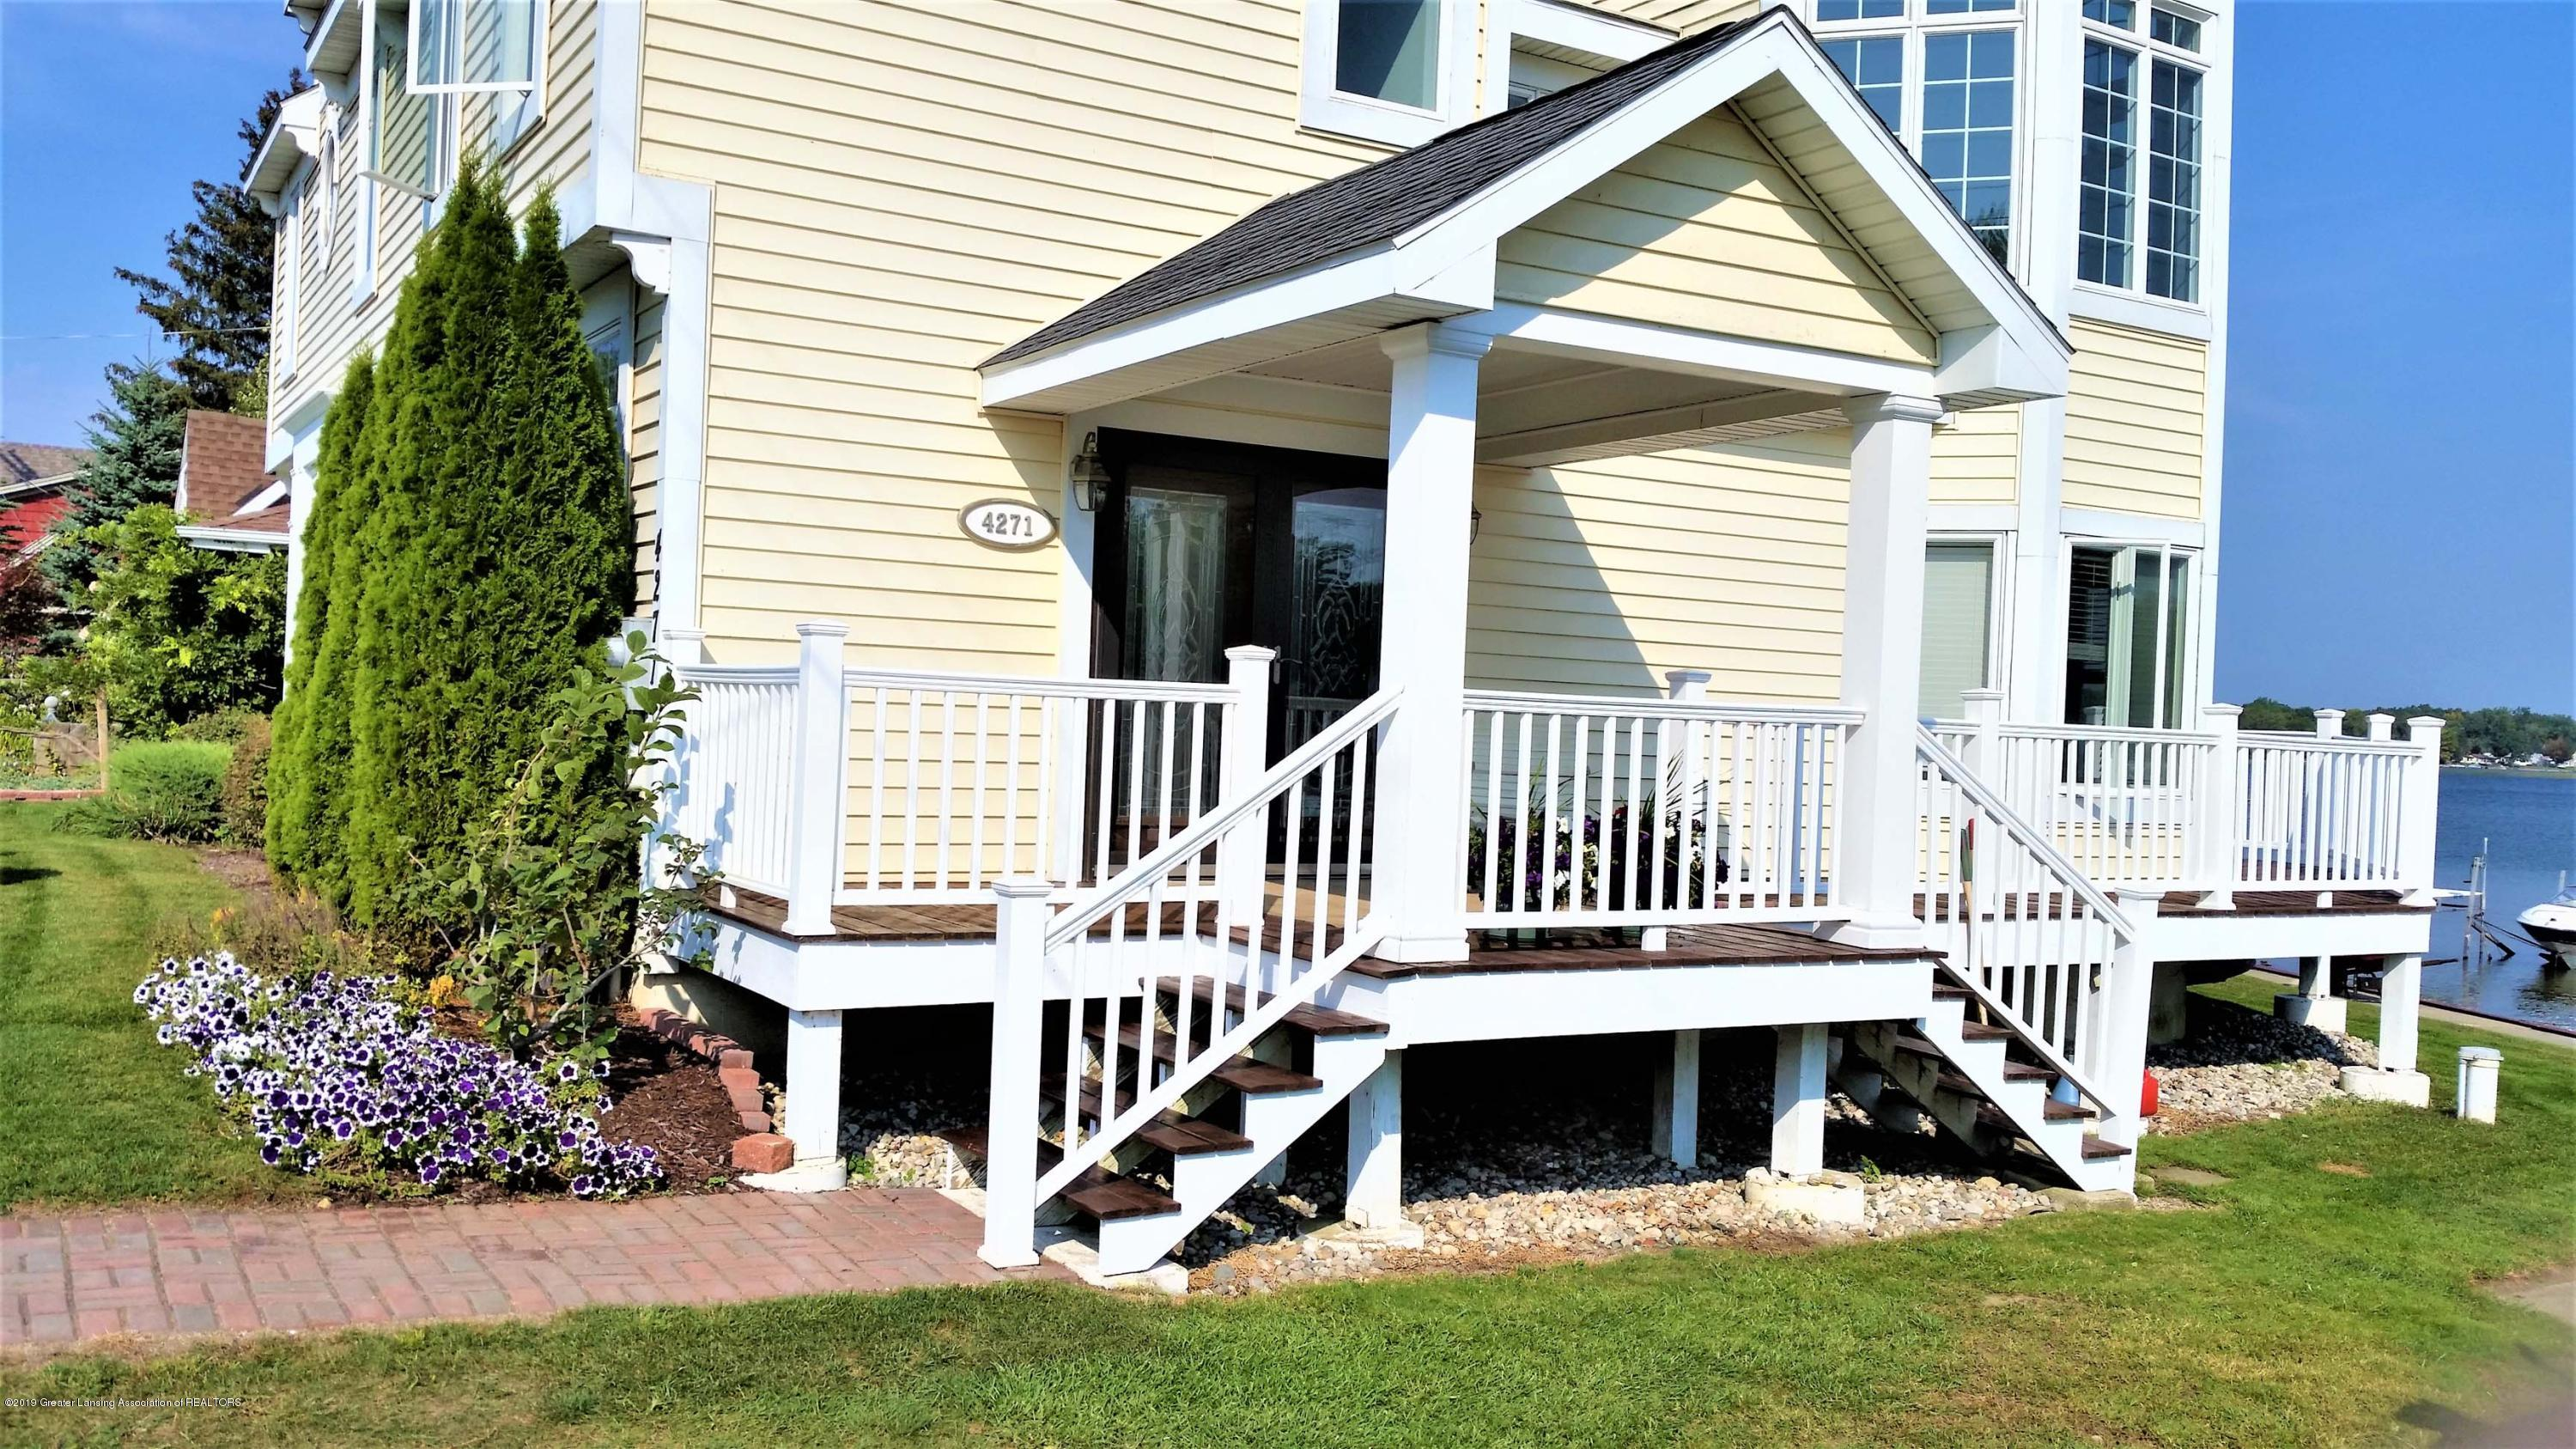 4271 Anderson Rd - 009 - 9